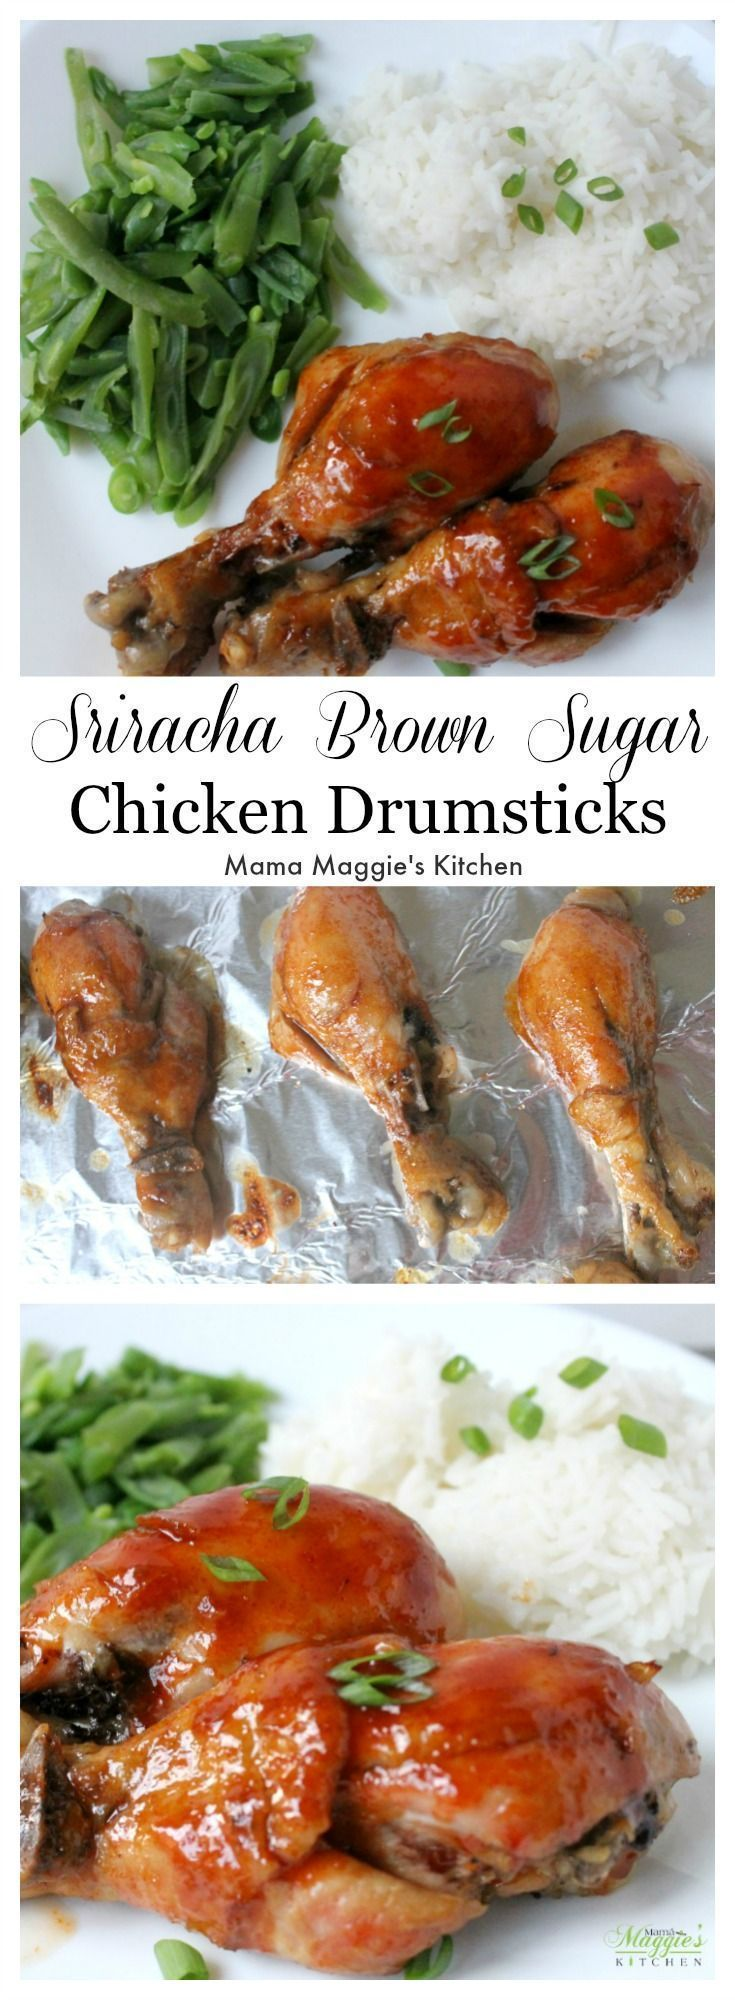 Sriracha Brown Sugar Chicken Drumsticks brings new meaning to yummy, fresh comfort food in a sweet and spicy way.